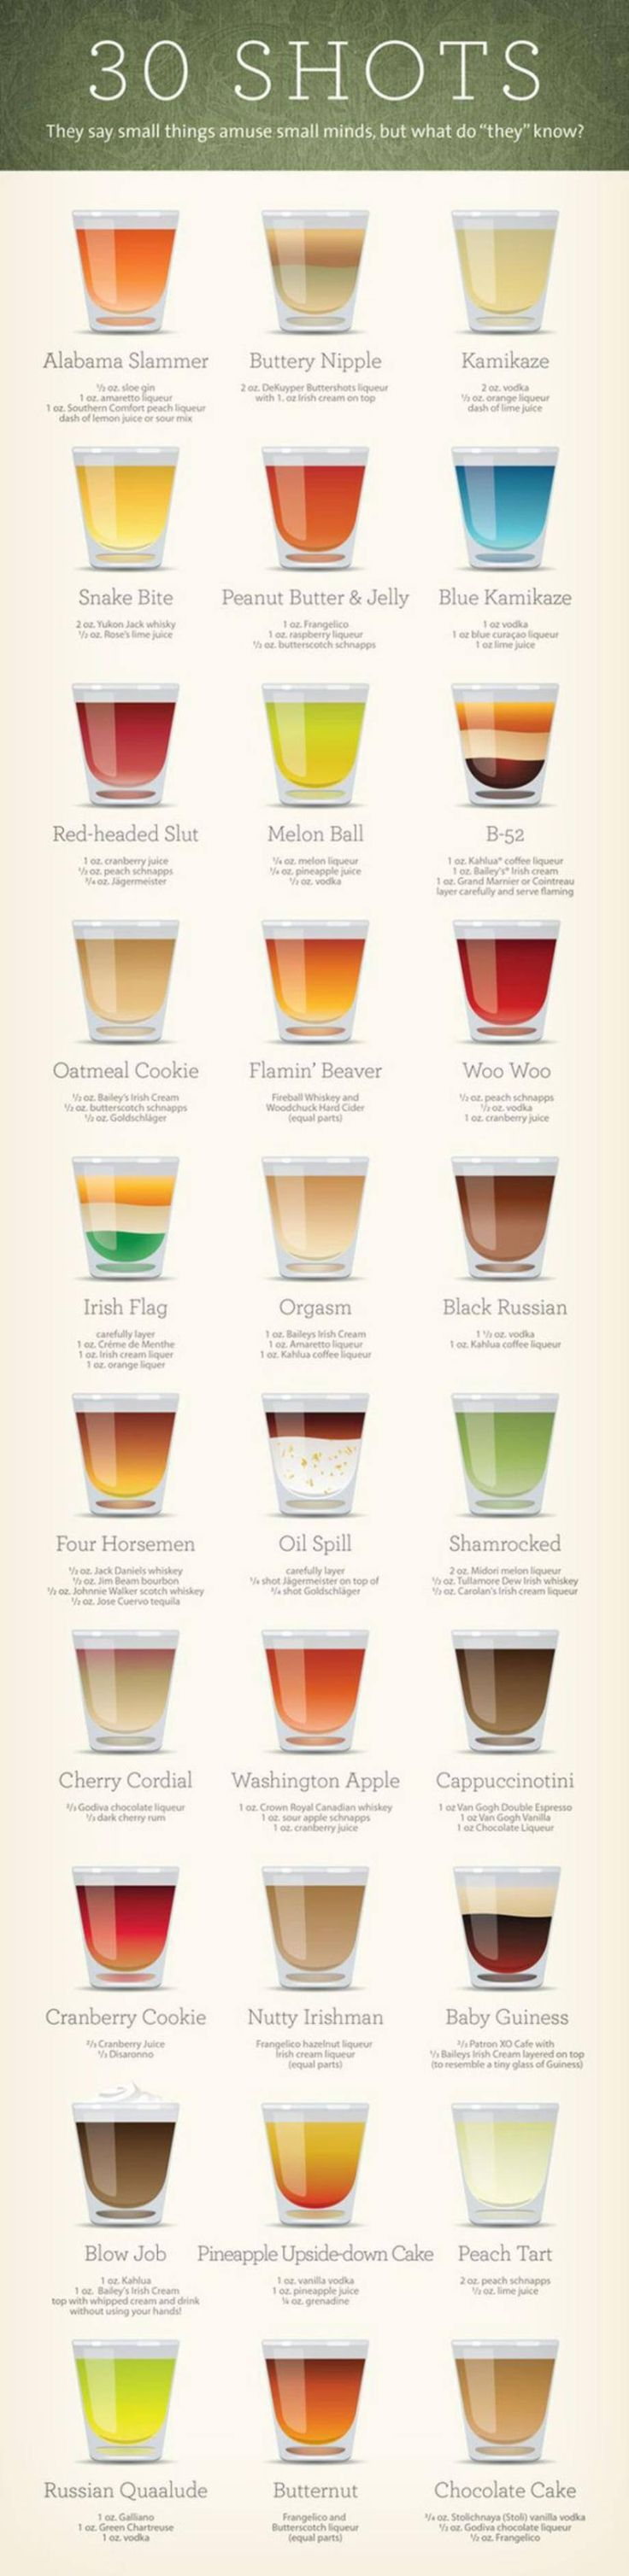 When you want something interesting to drink. A nice chart with 30 shots and how to make them...